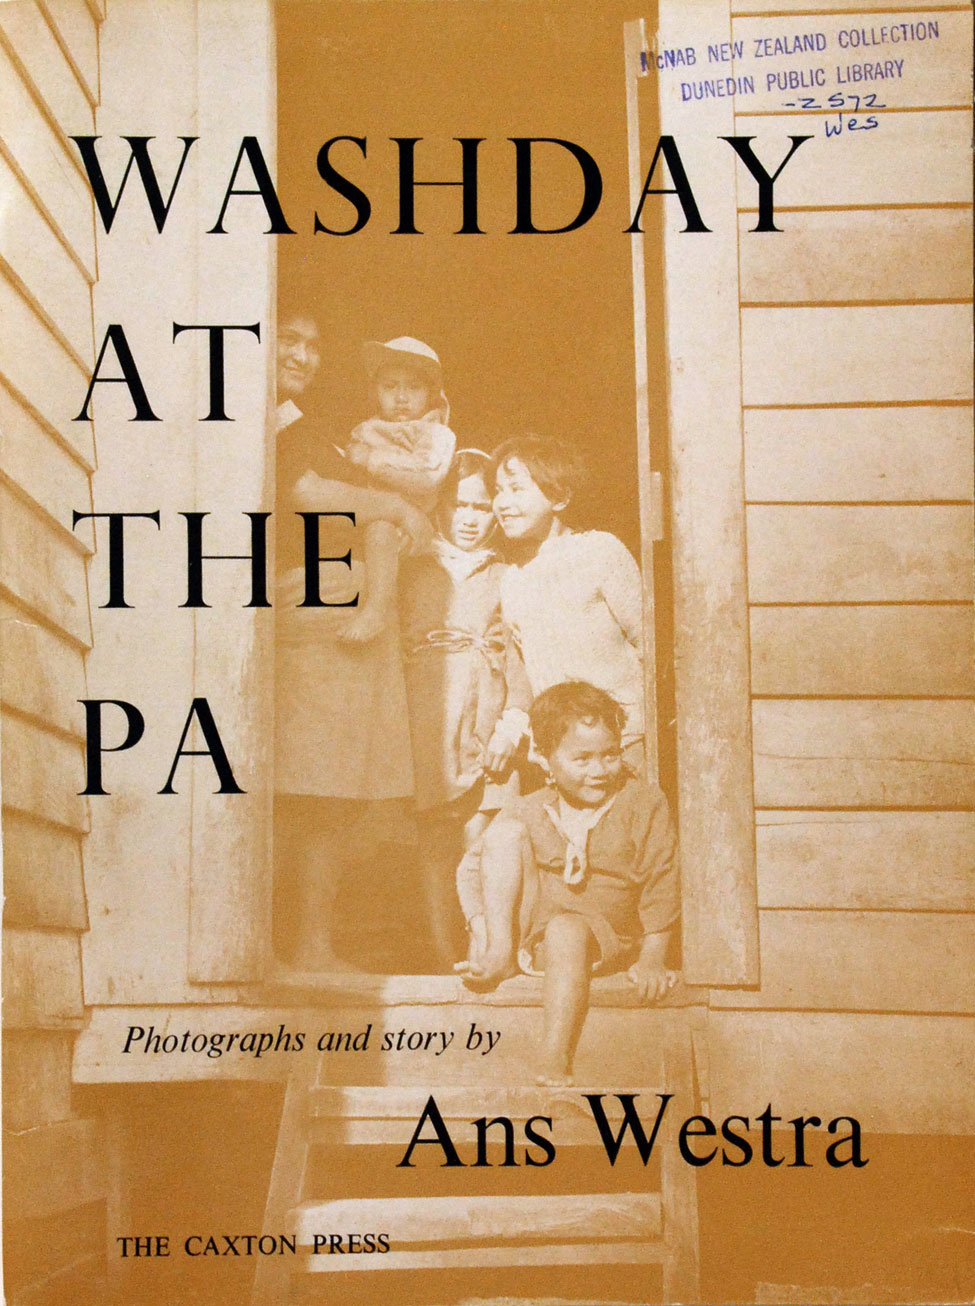 Ans Westra. Washday at the Pa. <i>Christchurch: The Caxton Press, 1964.</i>